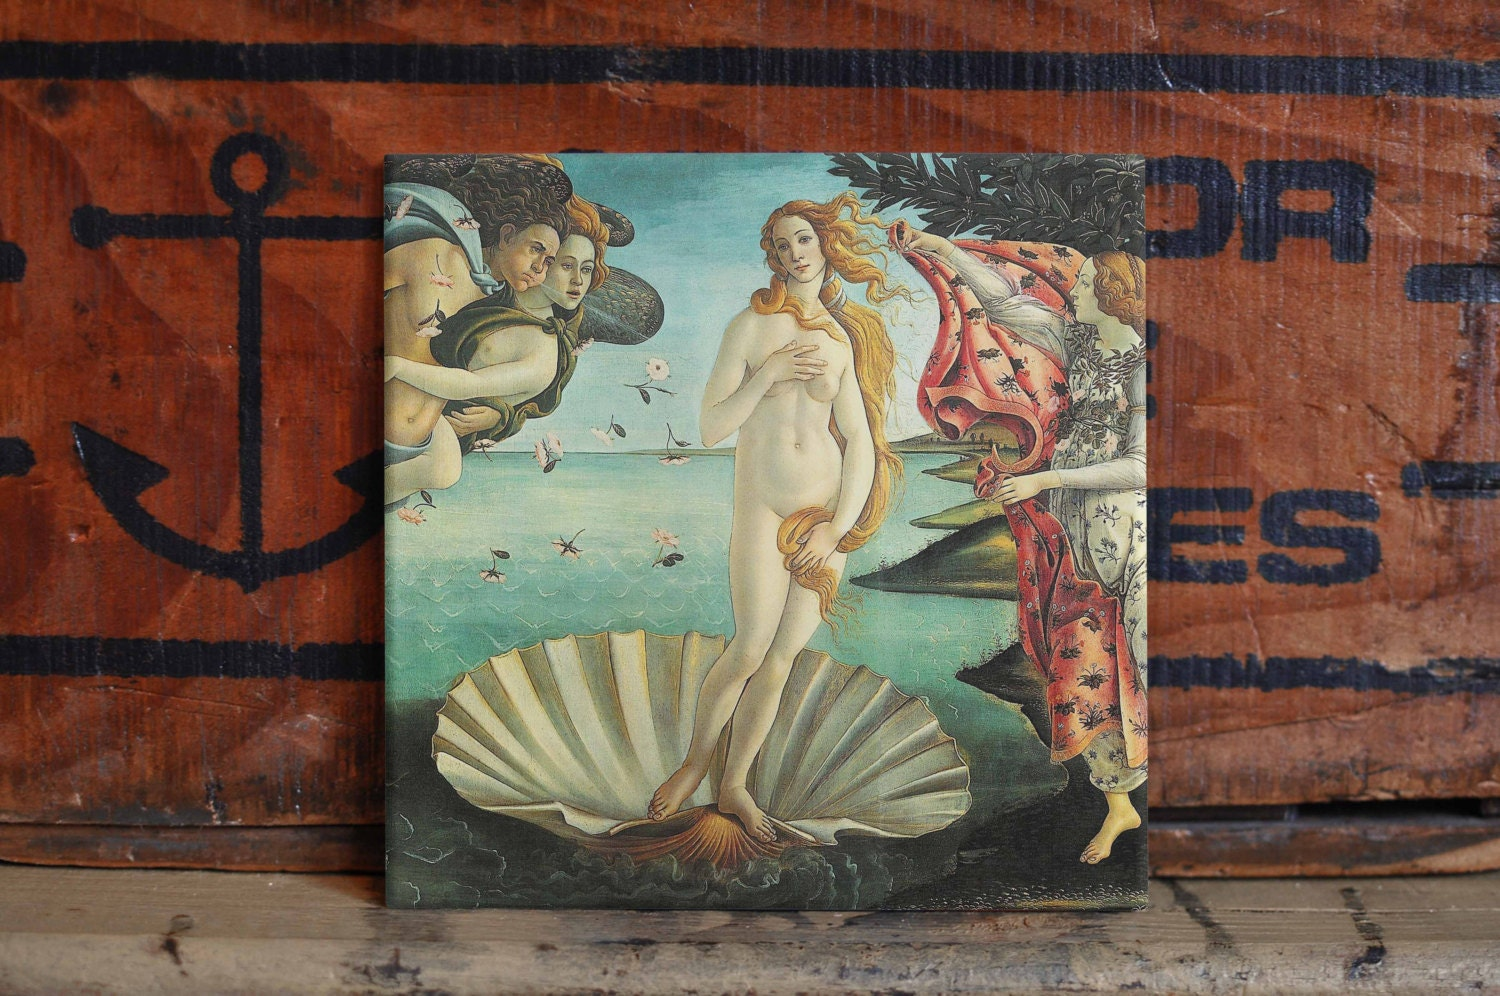 Botticelli venus ceramic tile coaster set artwork trivet hot plate botticelli venus ceramic tile coaster set artwork trivet hot plate pot stand plant splashback kitchen decor dailygadgetfo Image collections